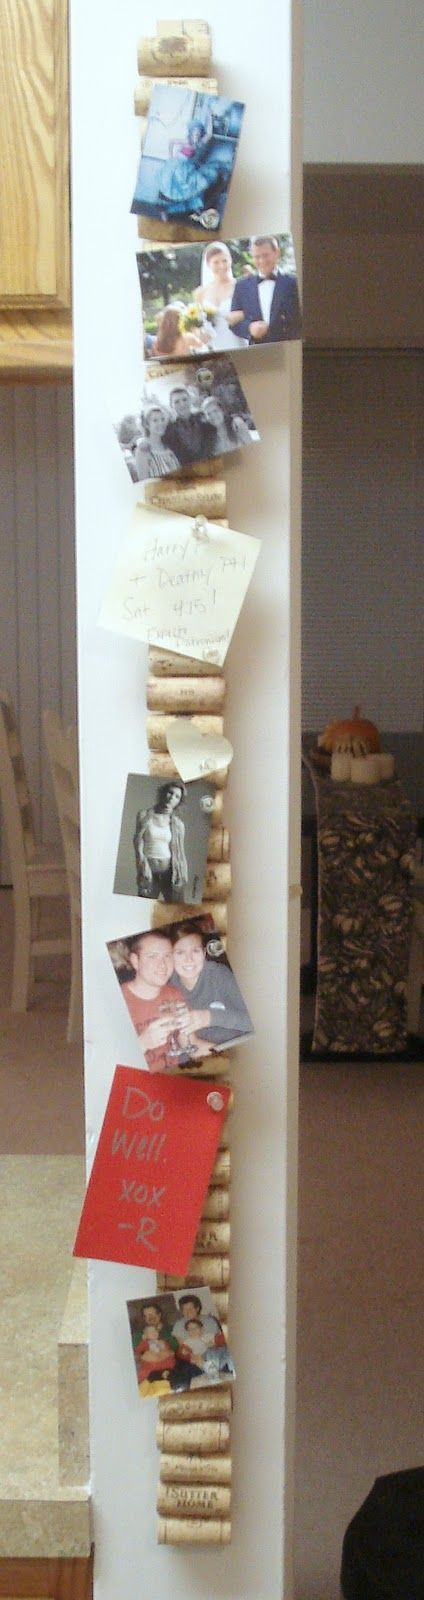 Reuse all of those old wine corks to display family photos!